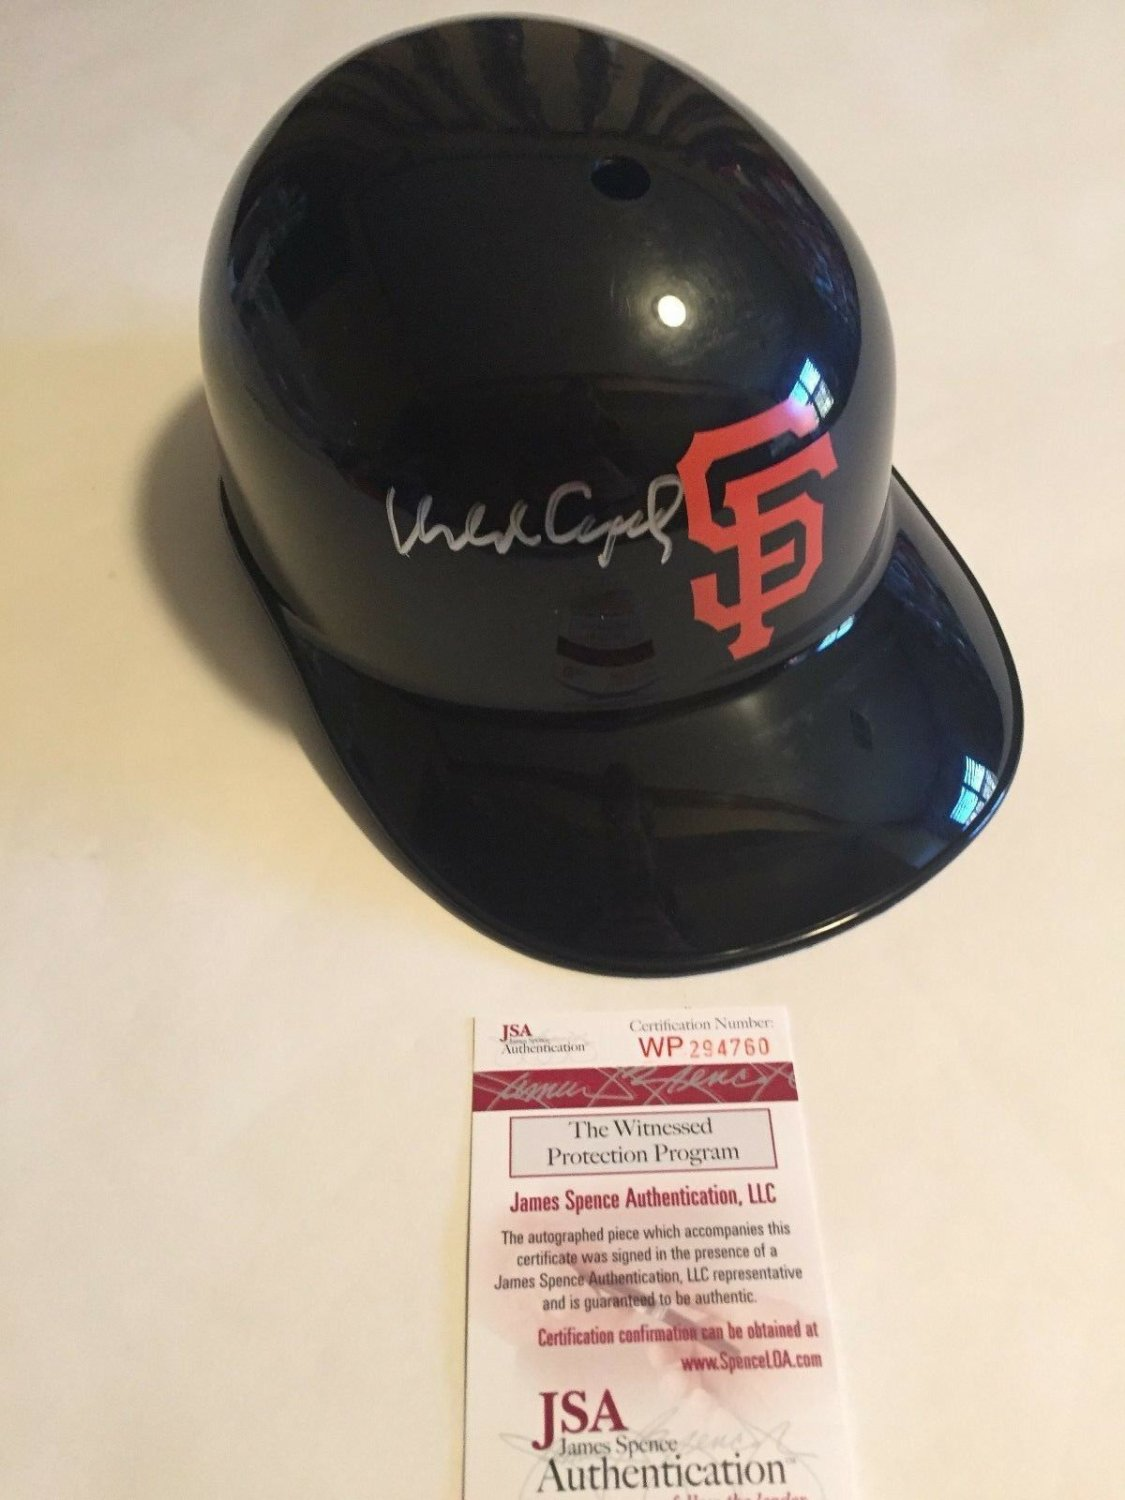 Autographed Helmets and Hats